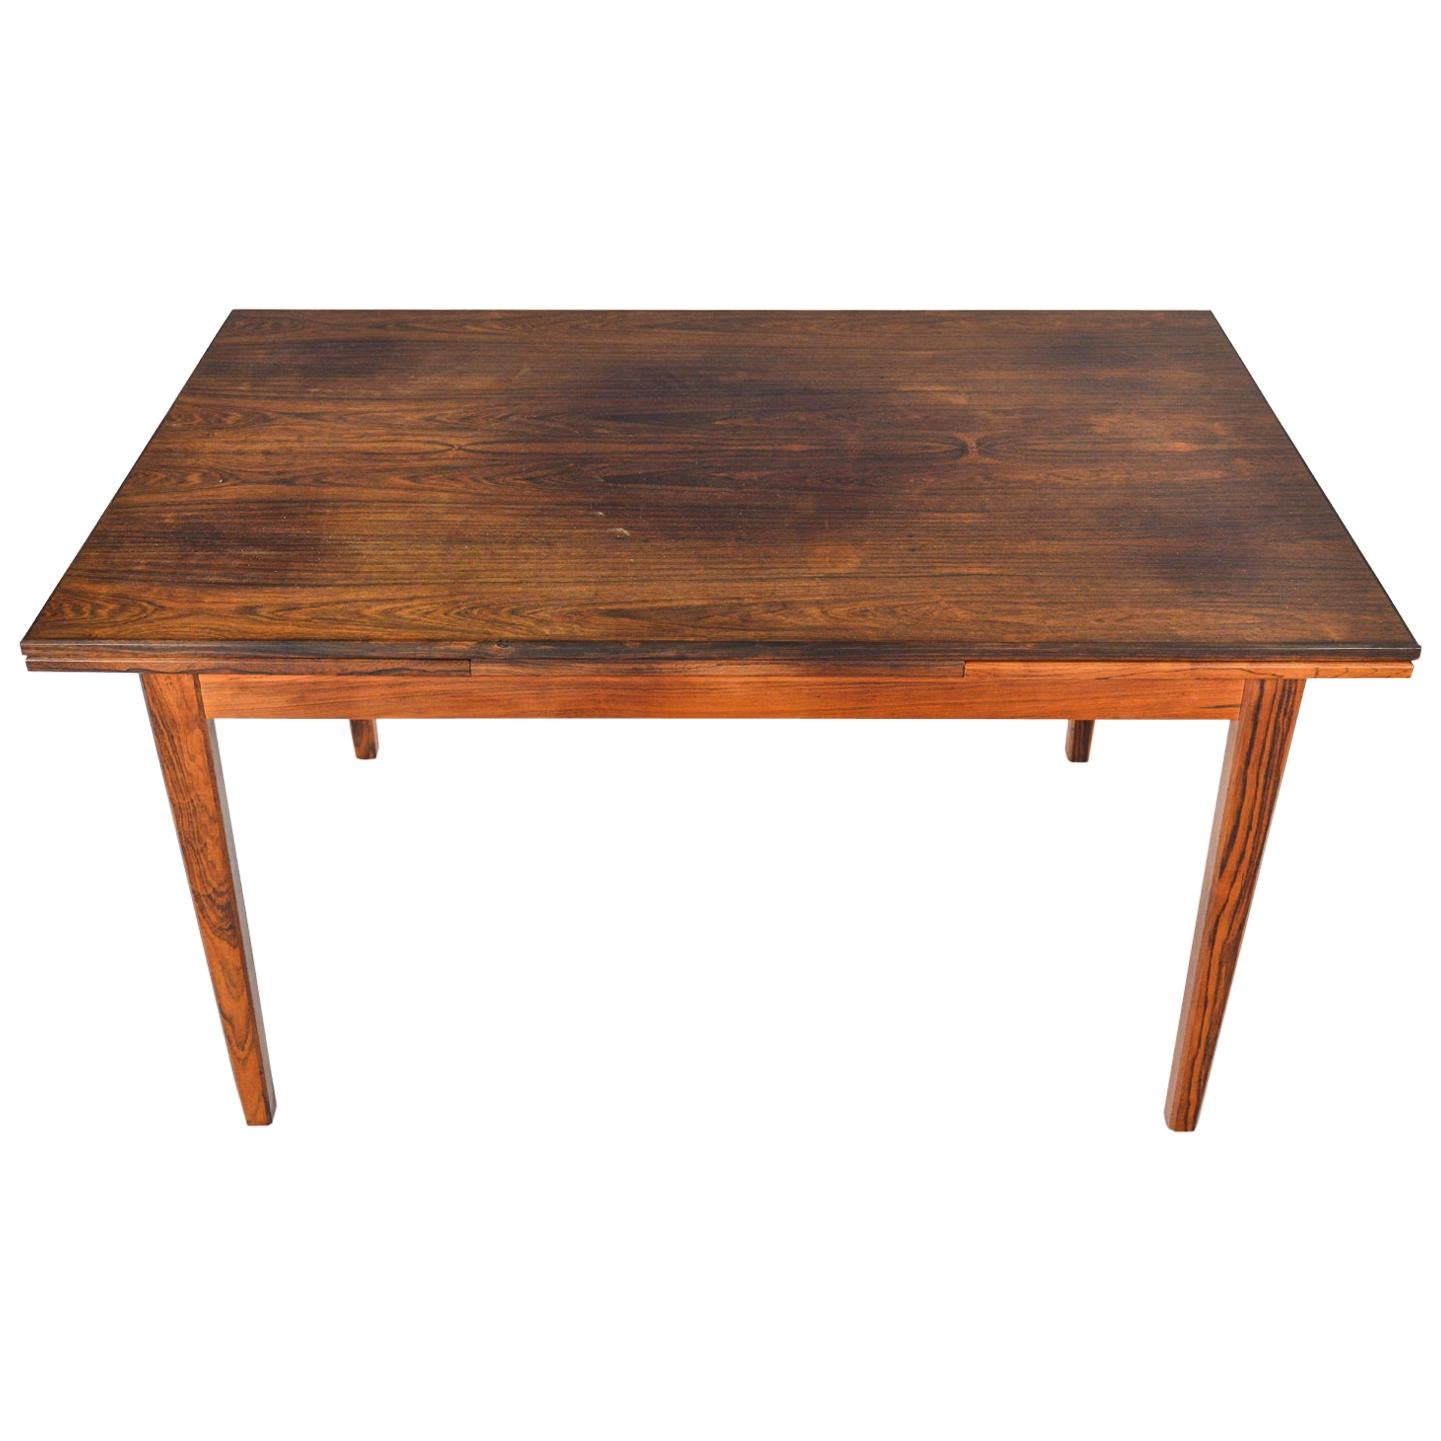 Danish Modern Draw Leaf Rosewood Dining Table by E.W. Bach